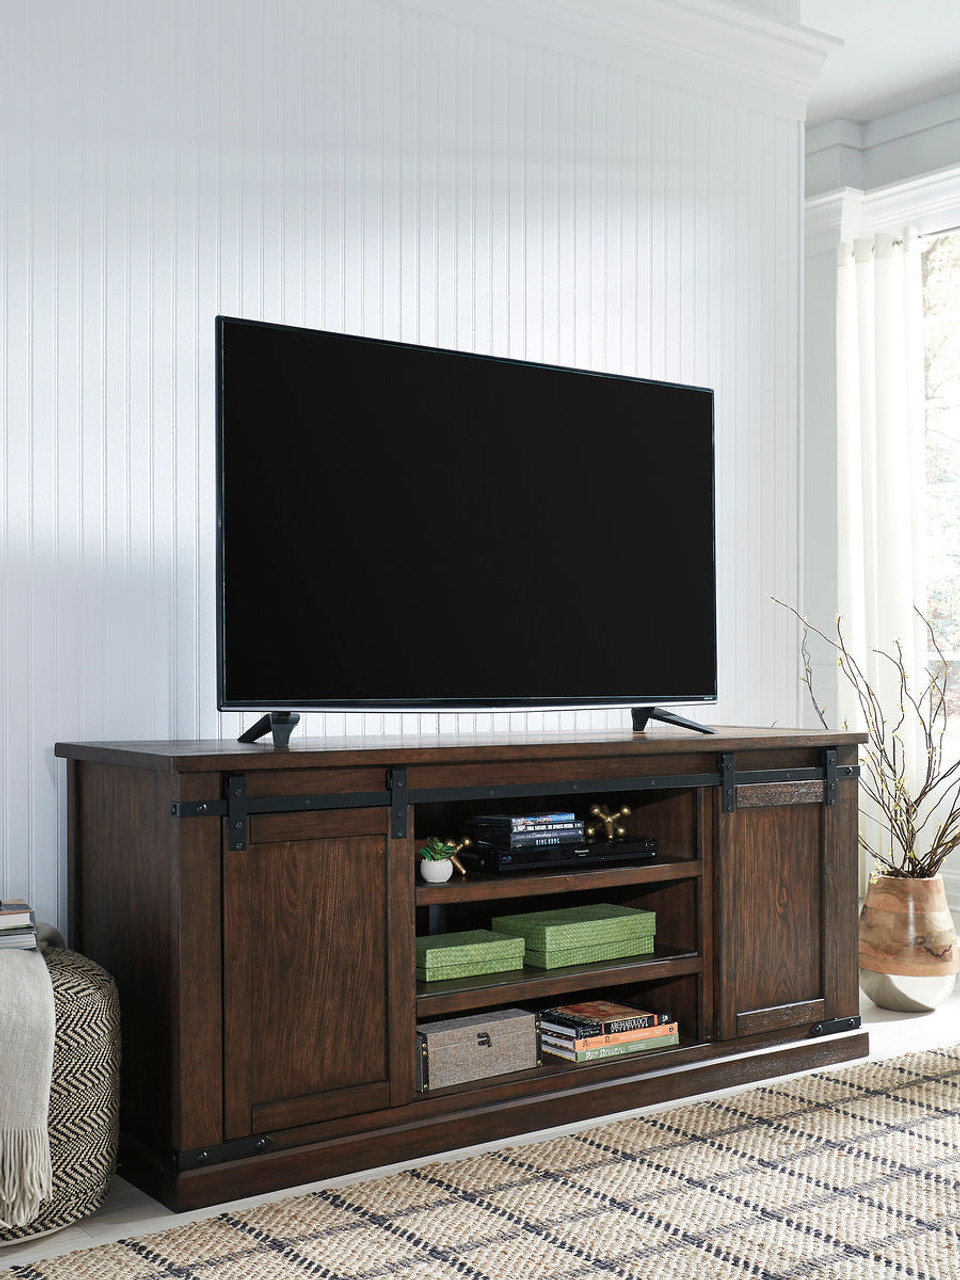 Regal Led Panel Budmore Rustic Brown Extra Large Tv Stand